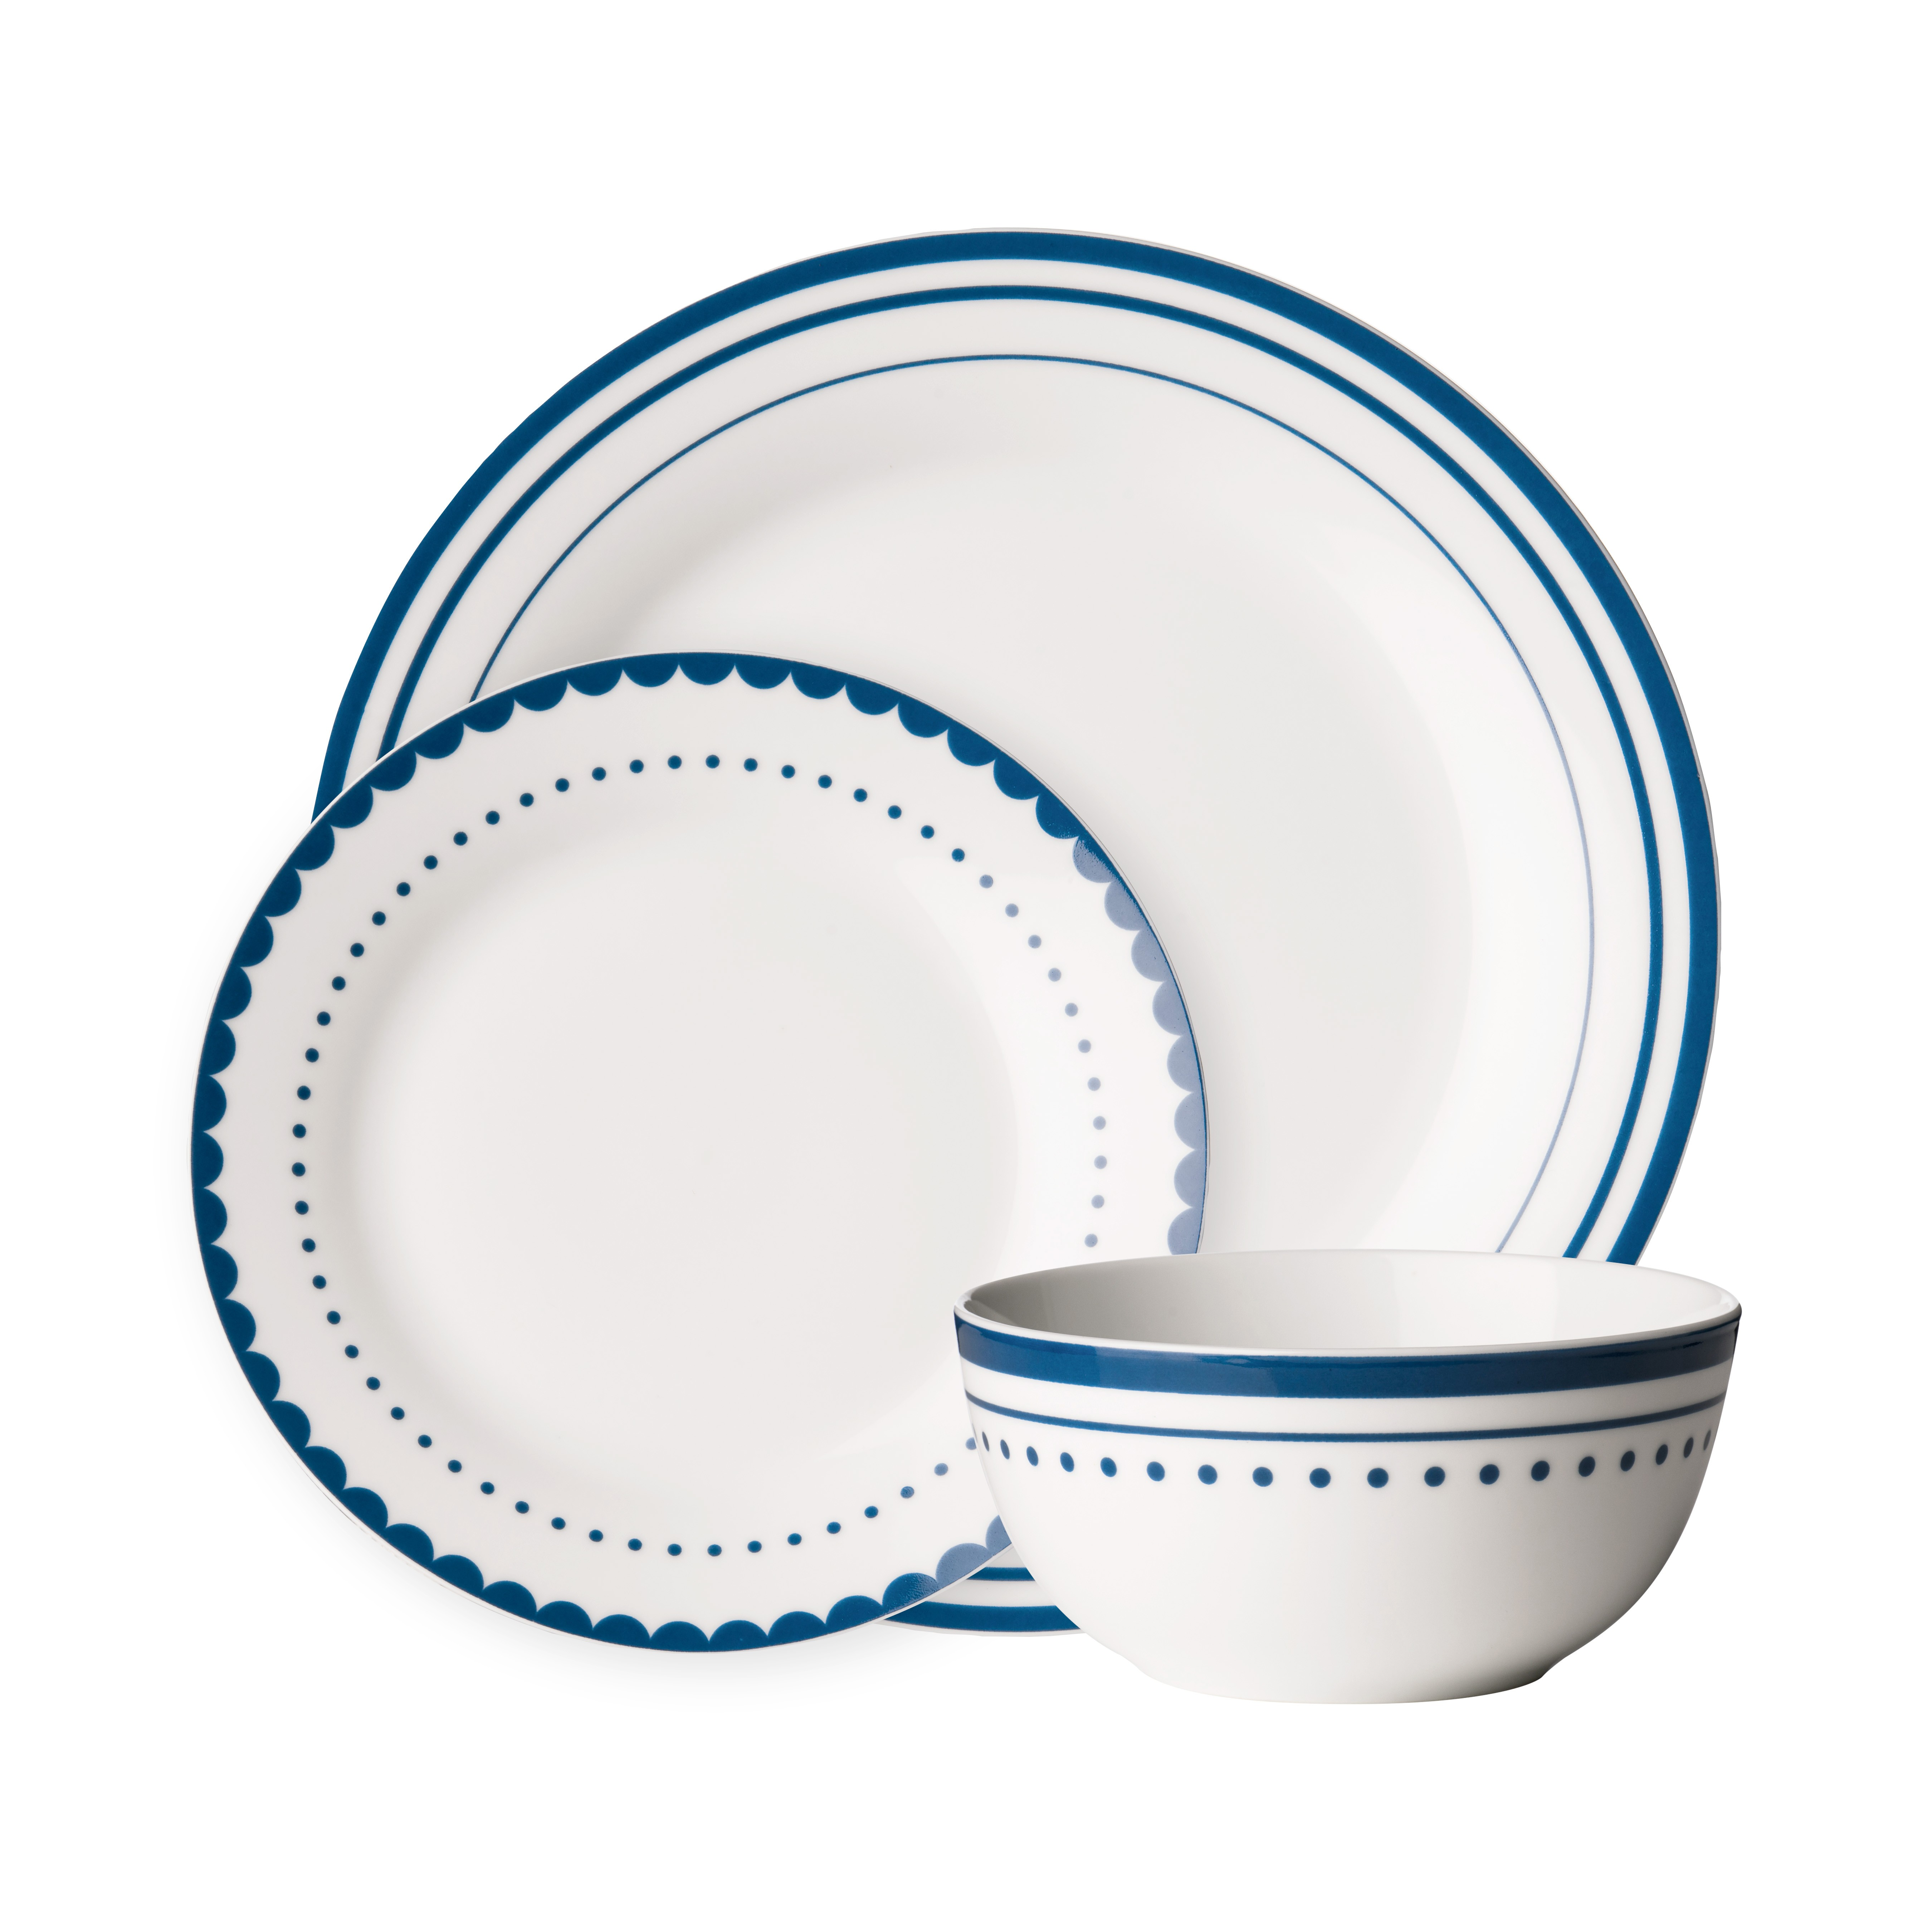 Avie 12pc Saturn Dinner Set Blue Porcelain